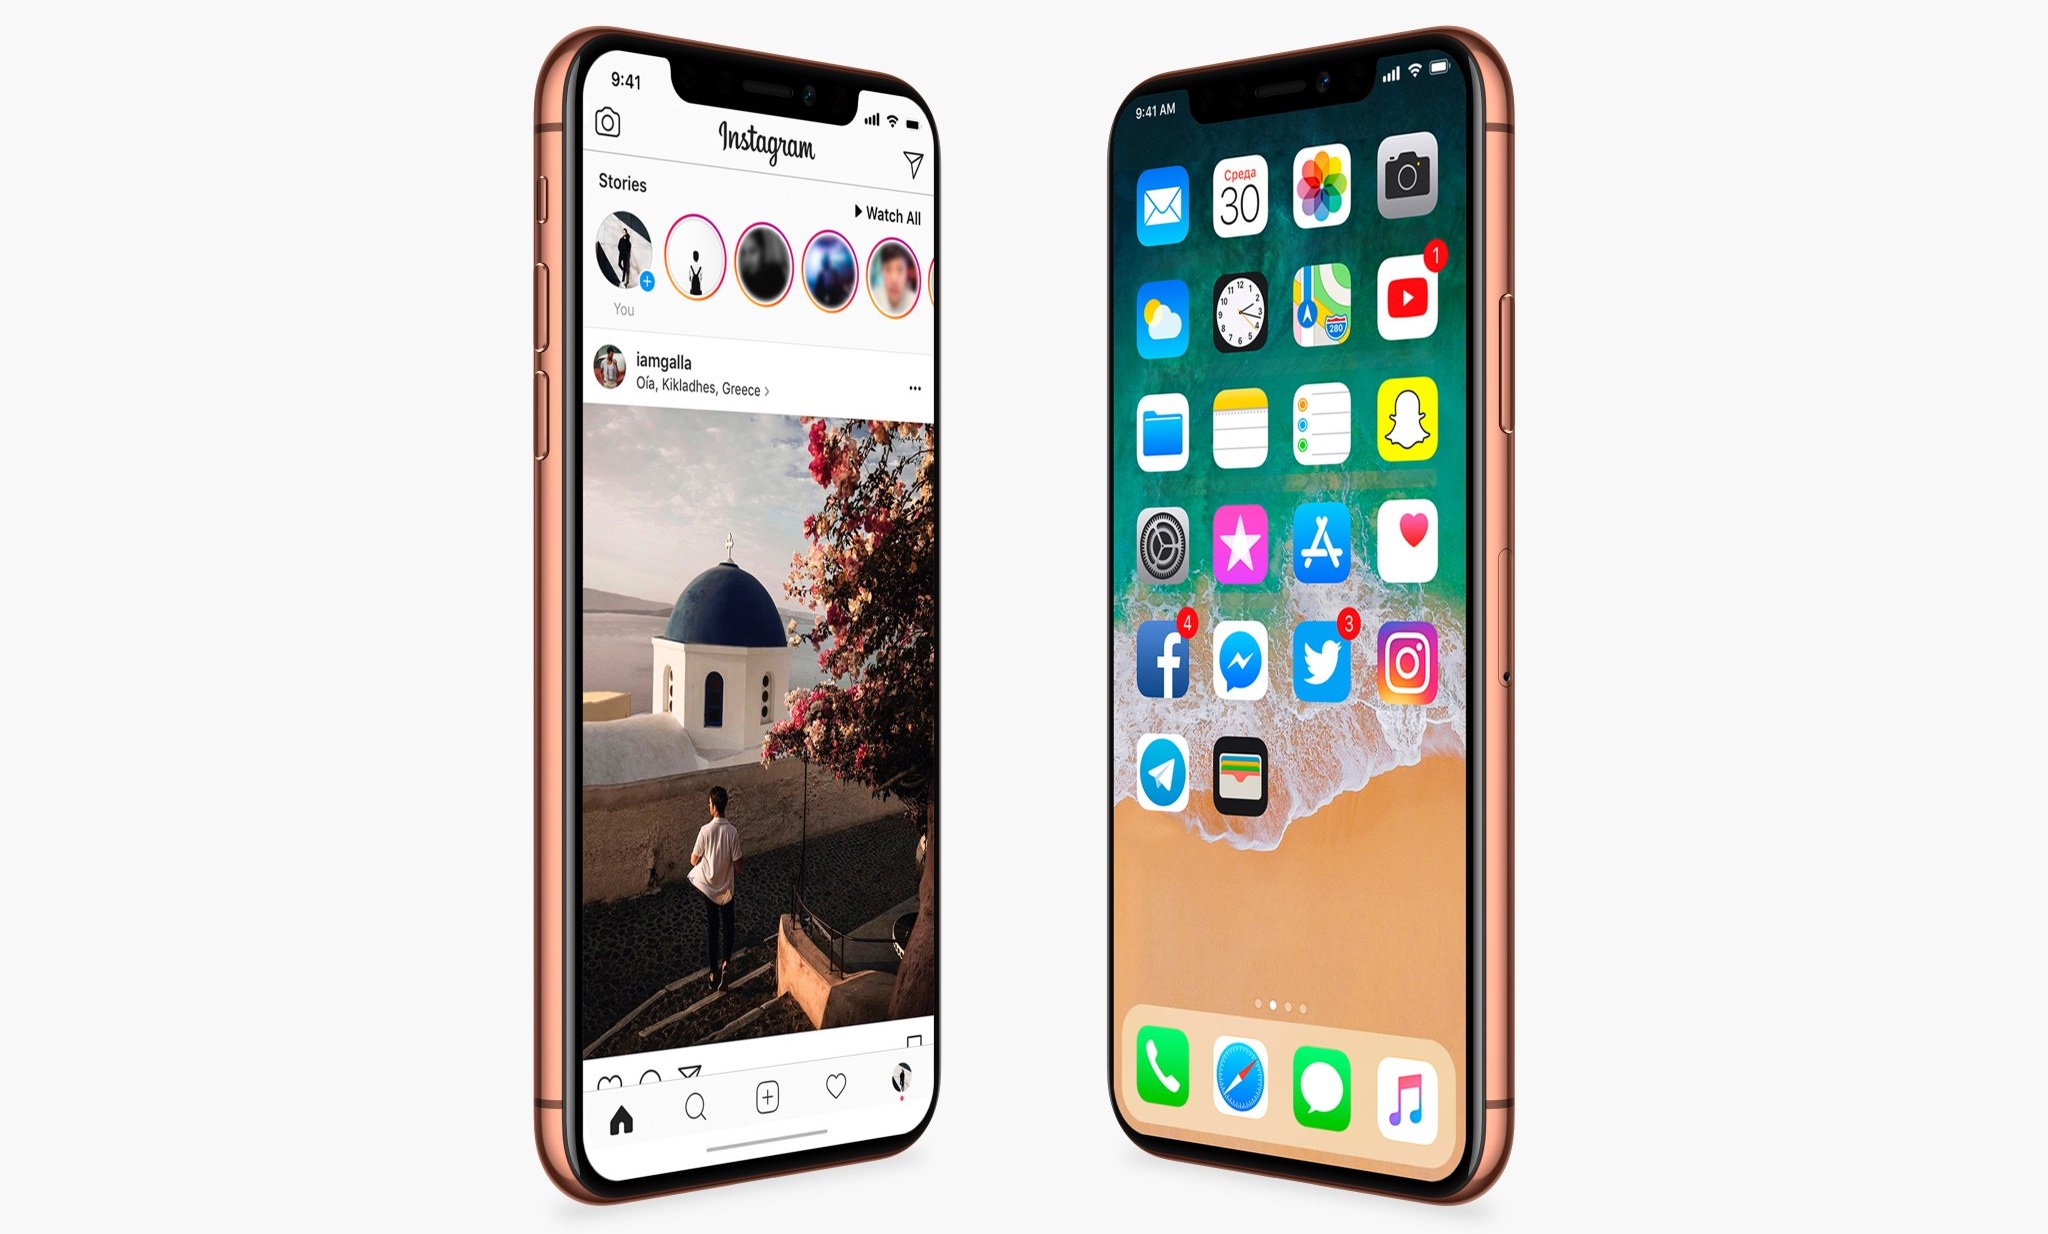 Apple Launches iPhone X - Full Presentation | Siasat pk Forums